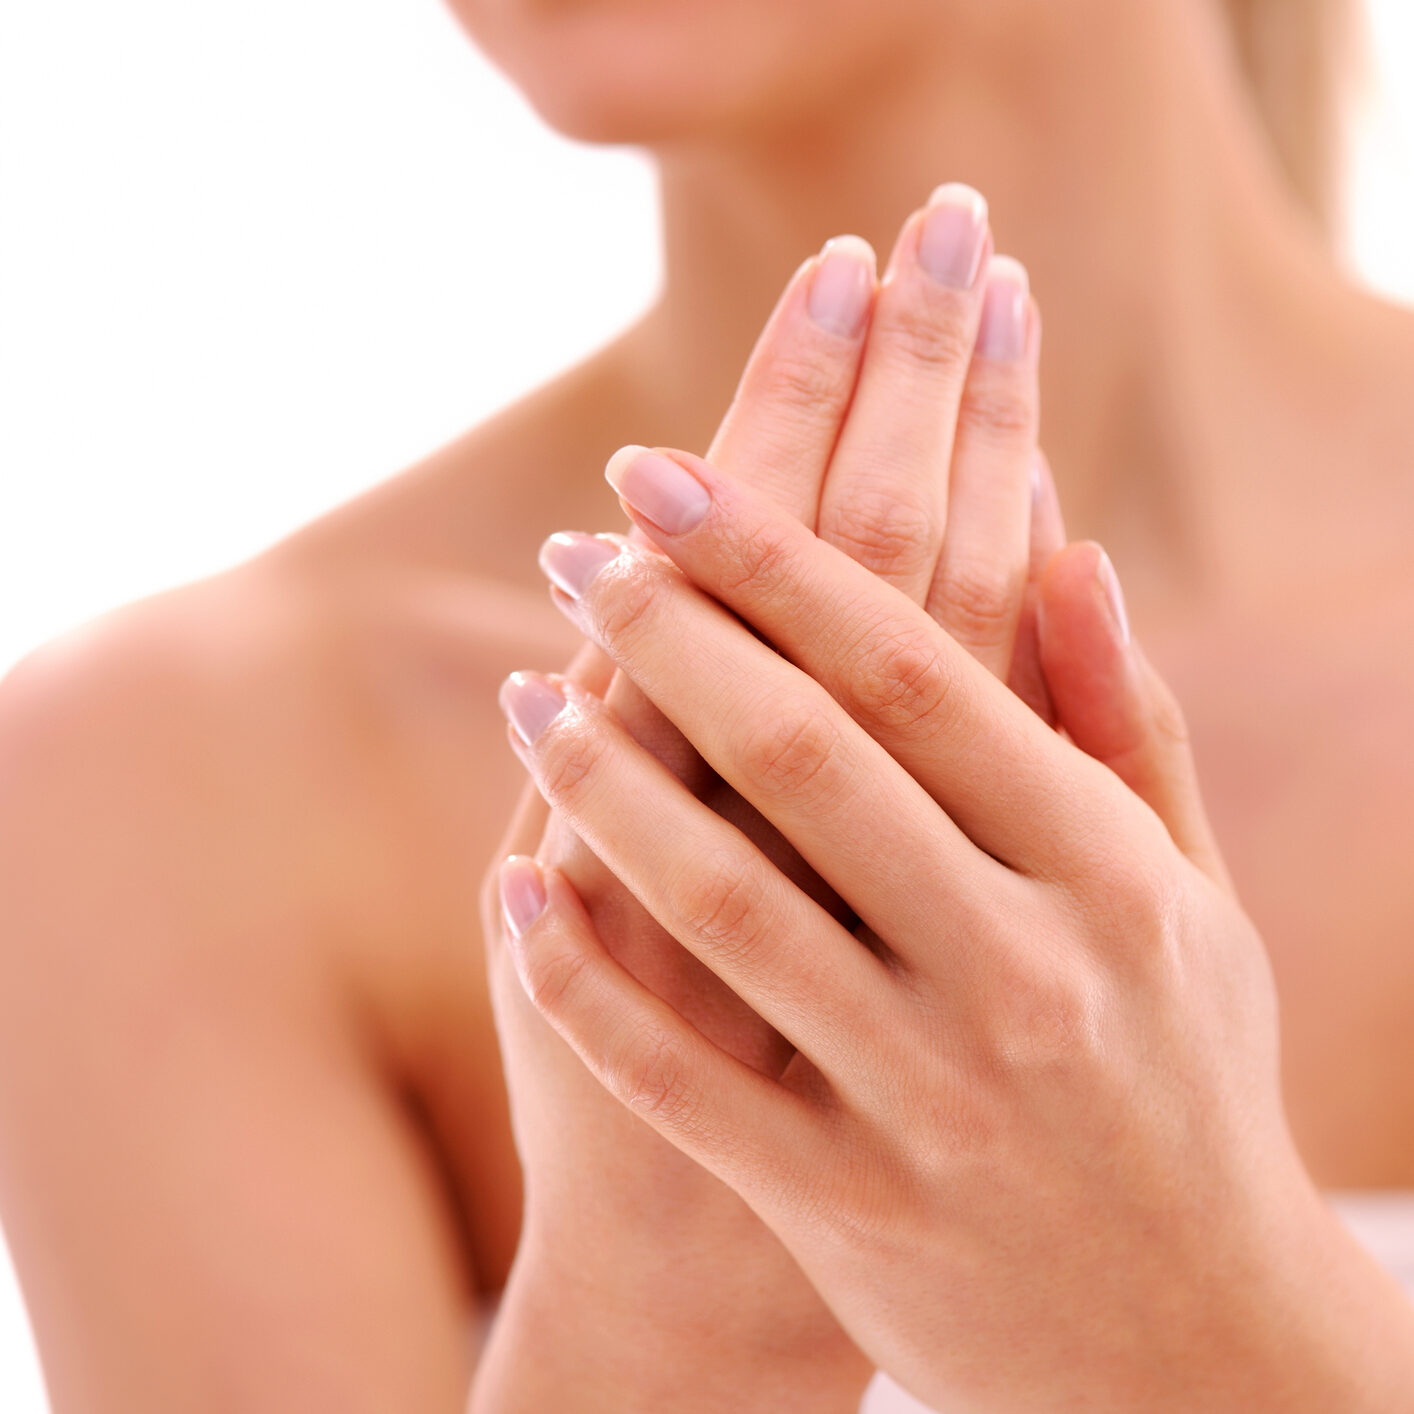 Woman with lovely manicured hands